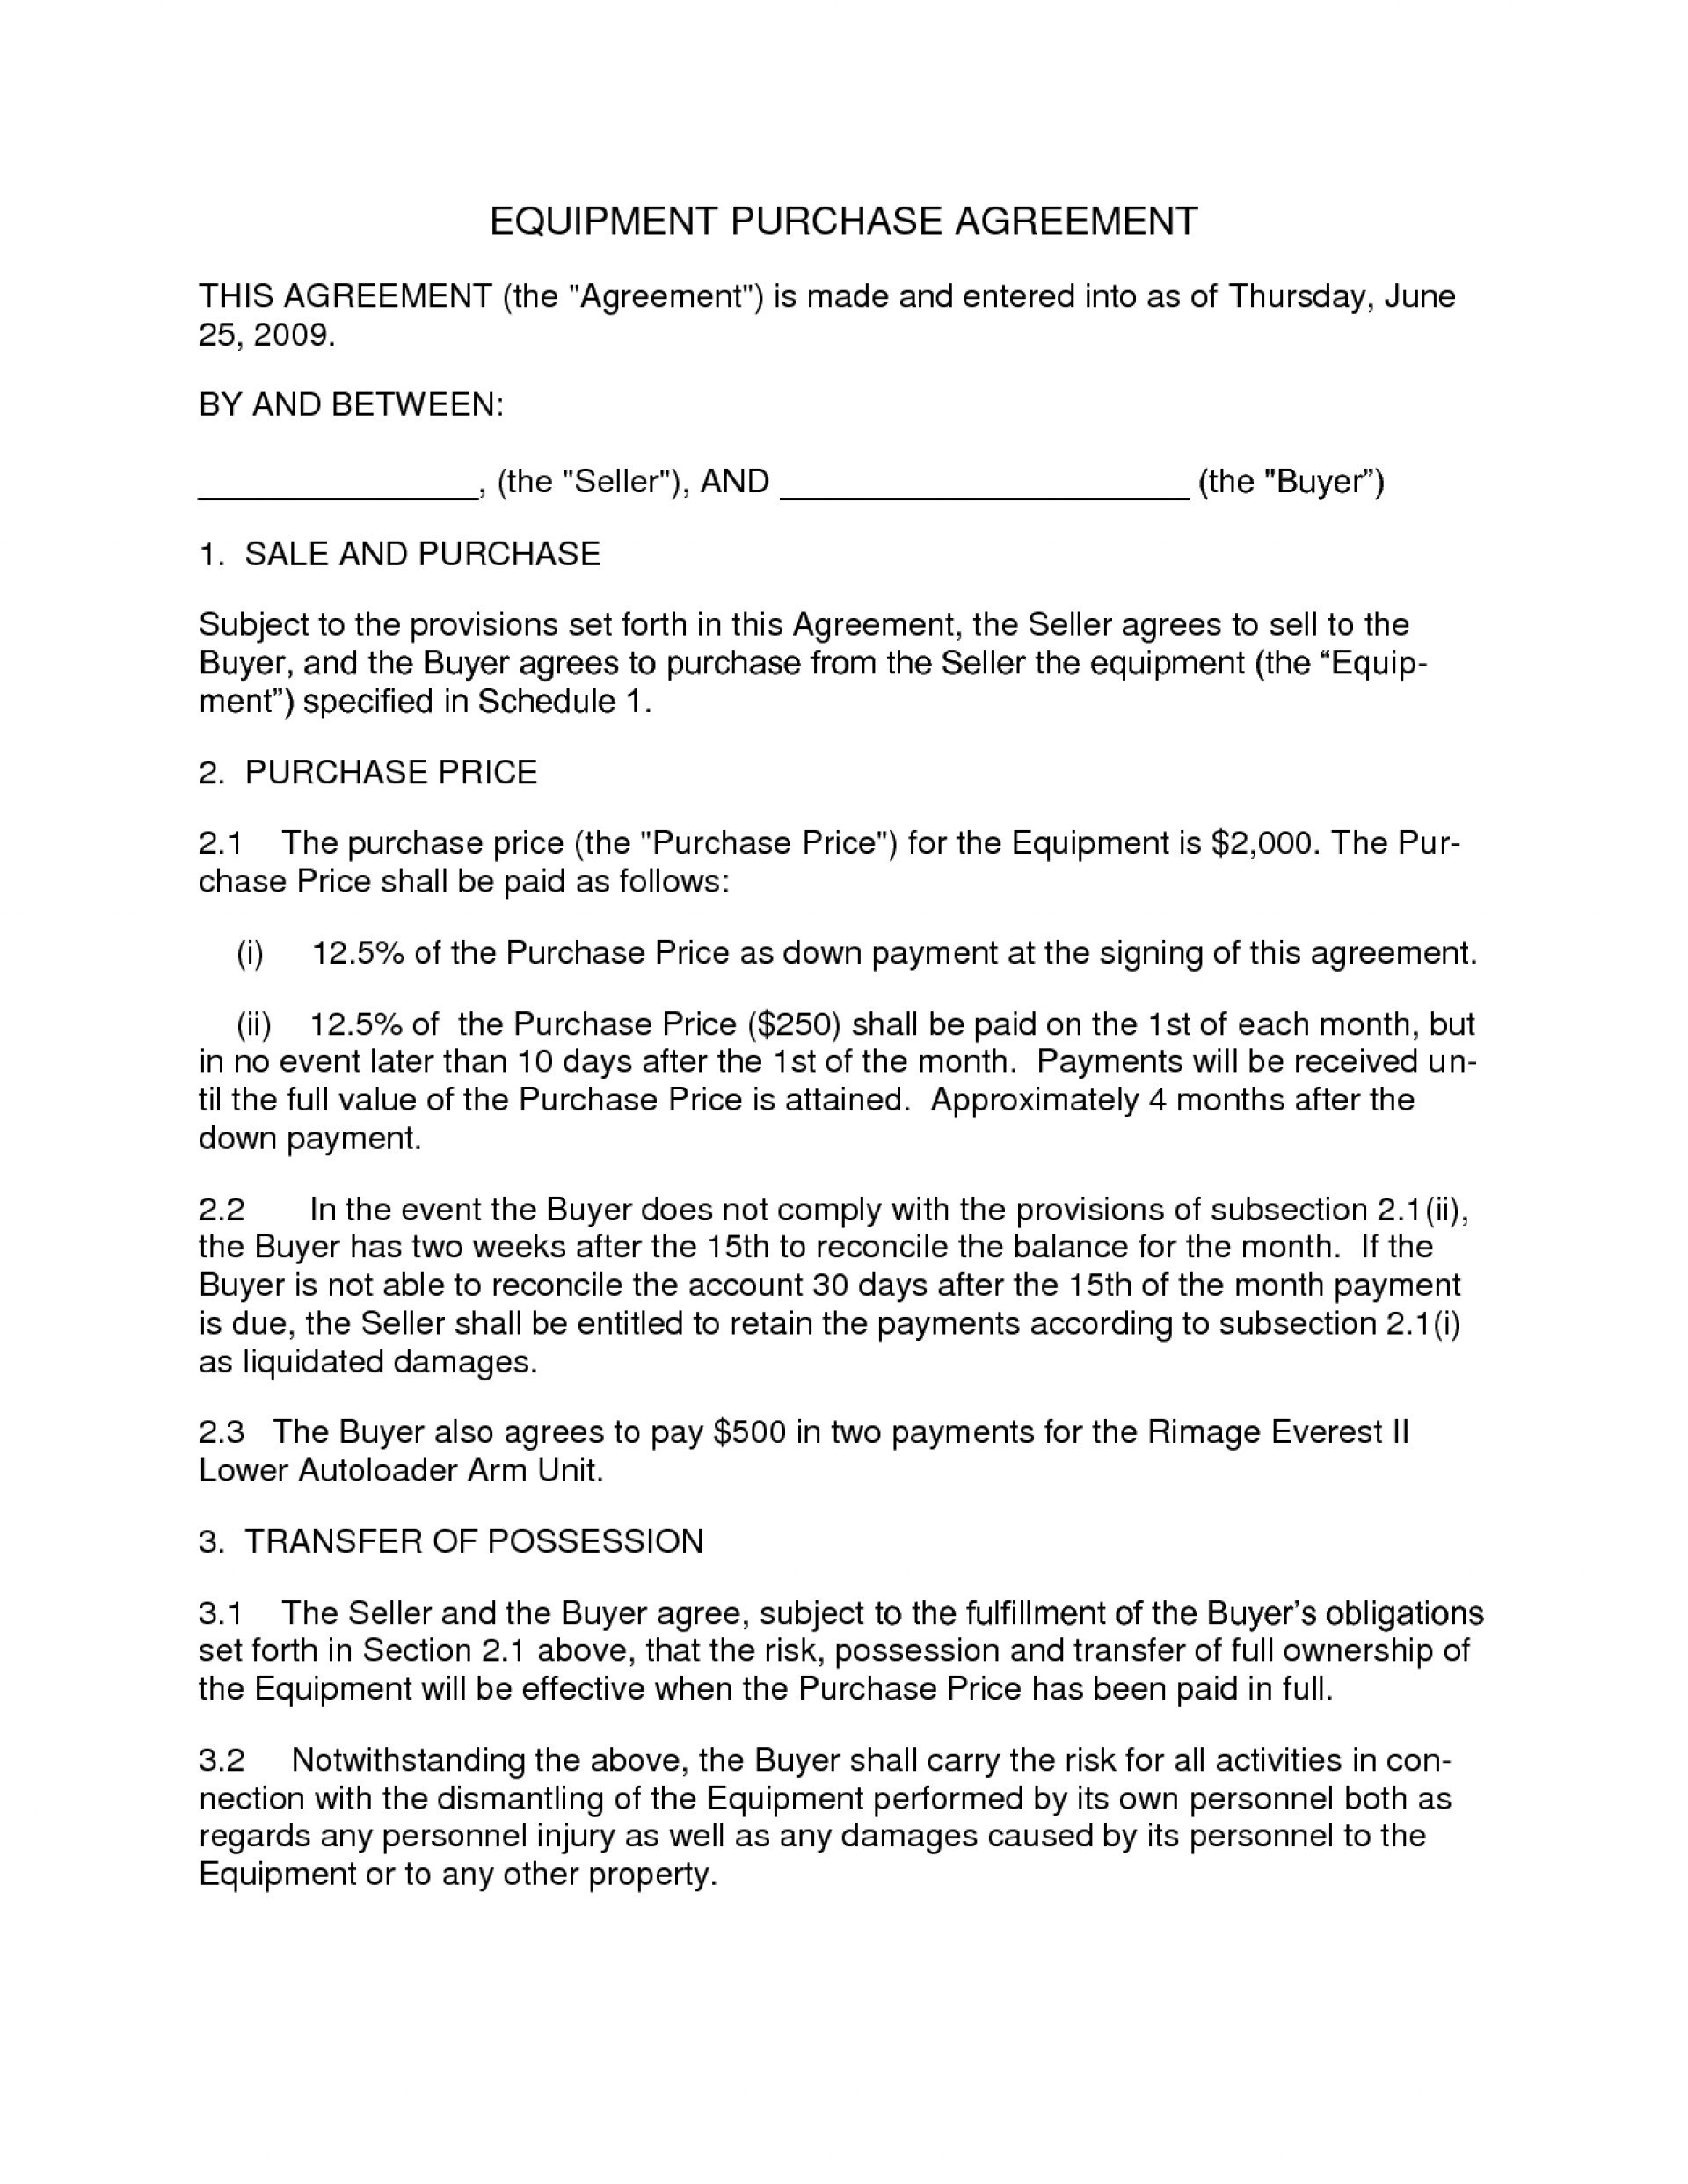 The Picture Of Hire Purchase Agreement Template Nz From Our For Hire Purchase Agreement Template